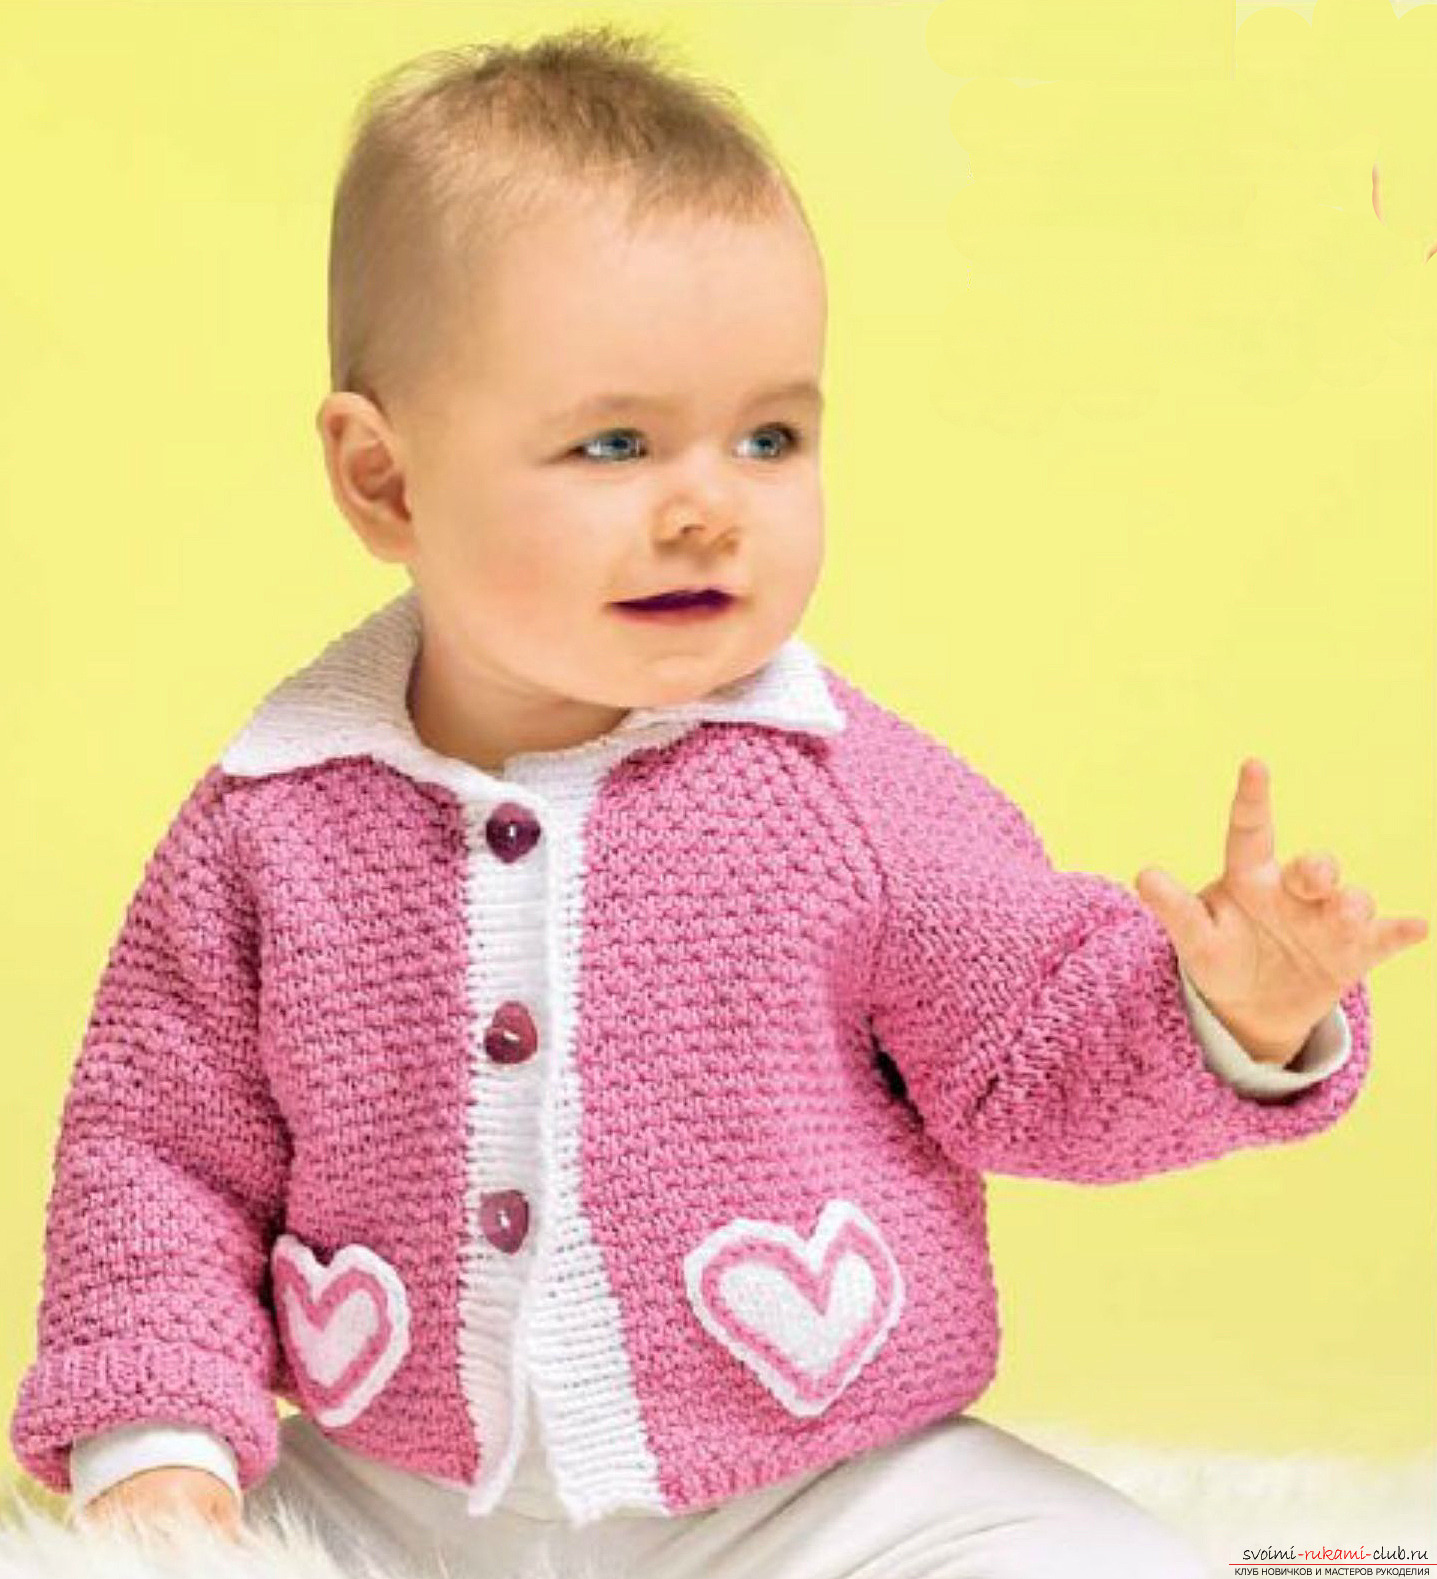 Knitting a baby blouse with knitting needles. Diagram and photo for beginner needlewomen. Photo №1